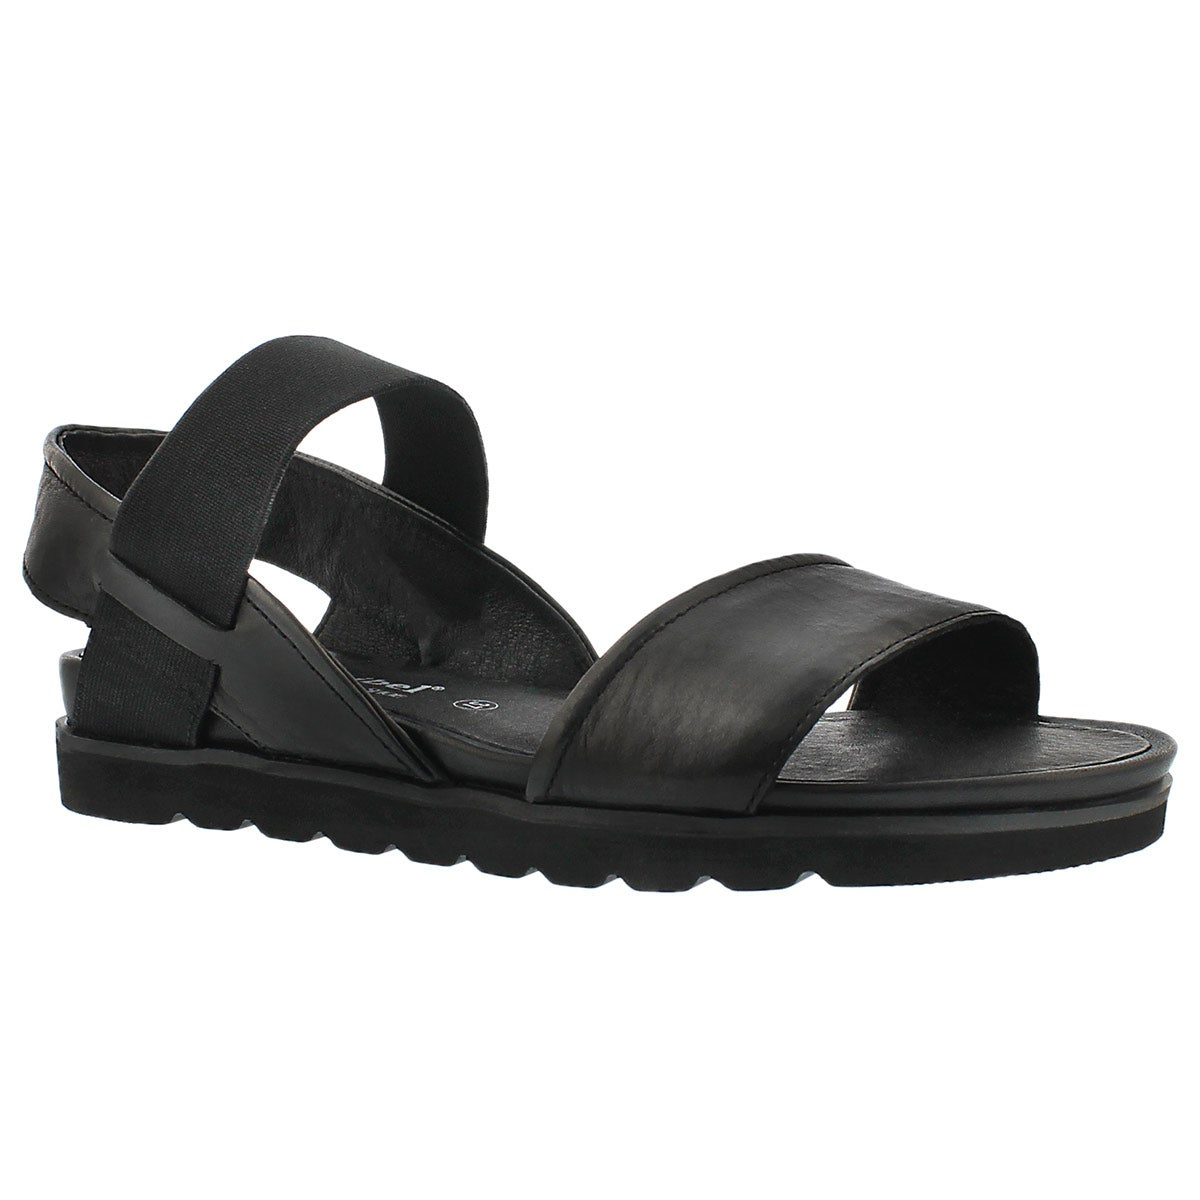 Lds Jolien 05 black casual sandal